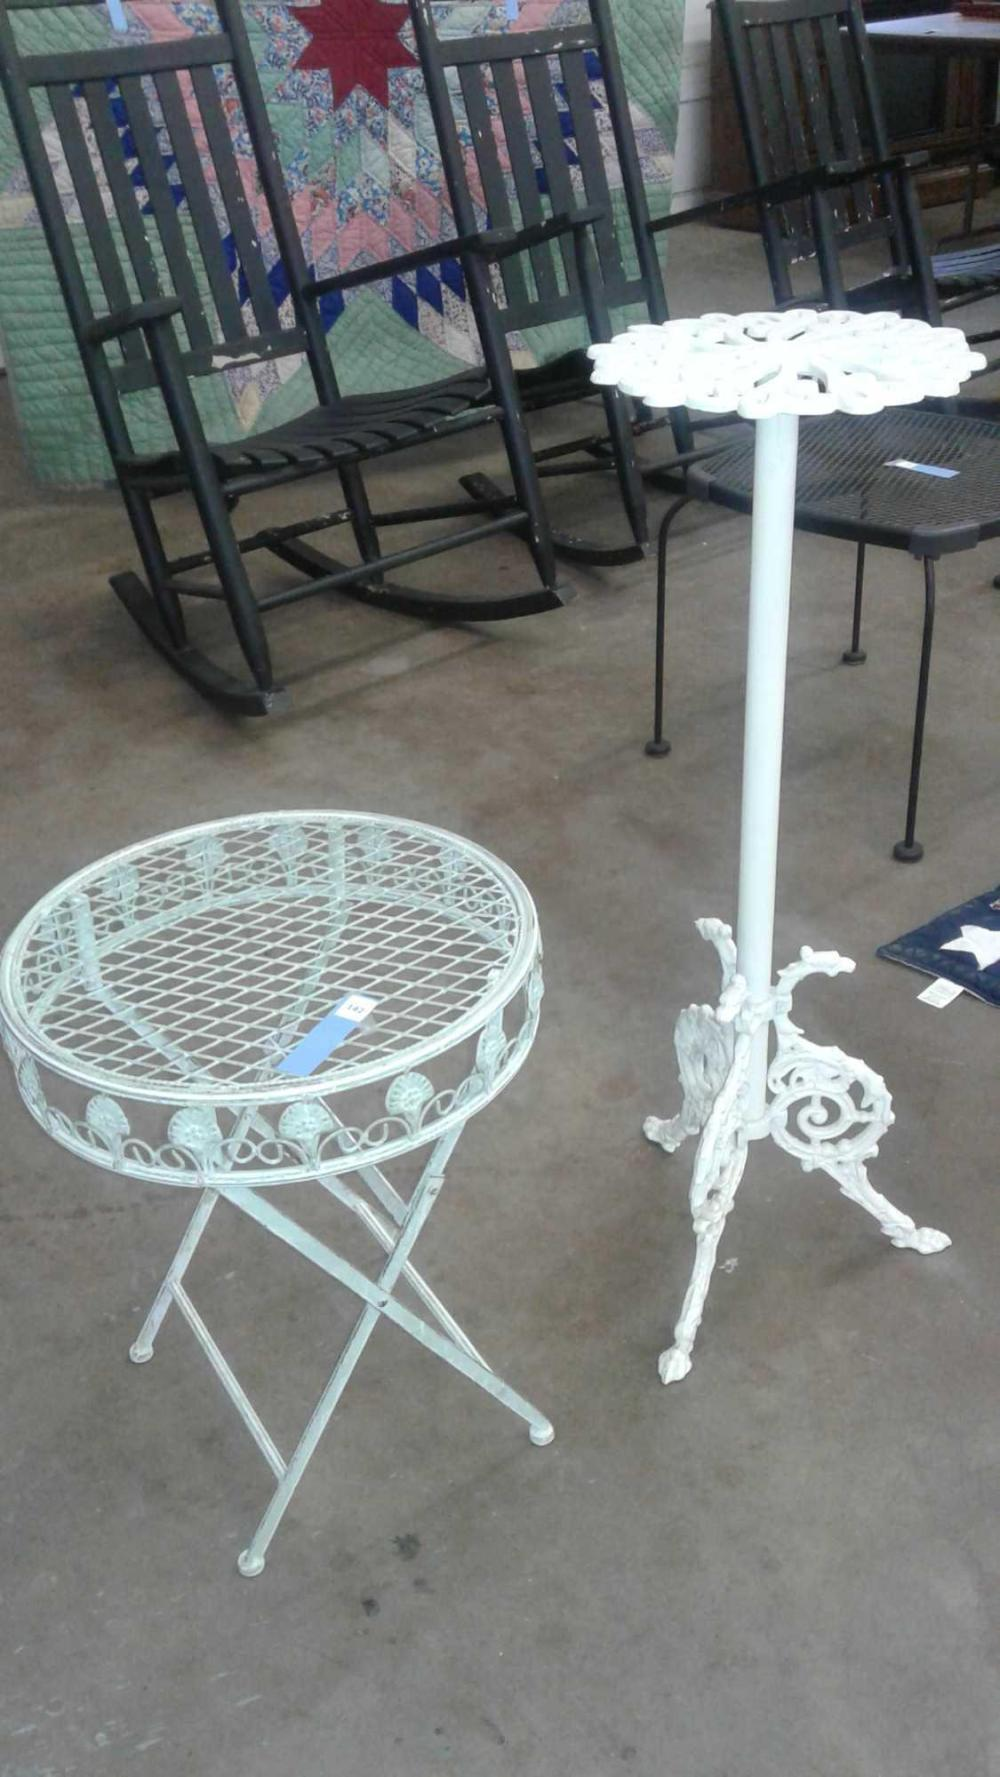 IRON PATIO FERN STAND & SMALL FOLDING COCKTAIL TABLE - 2 ITEMS